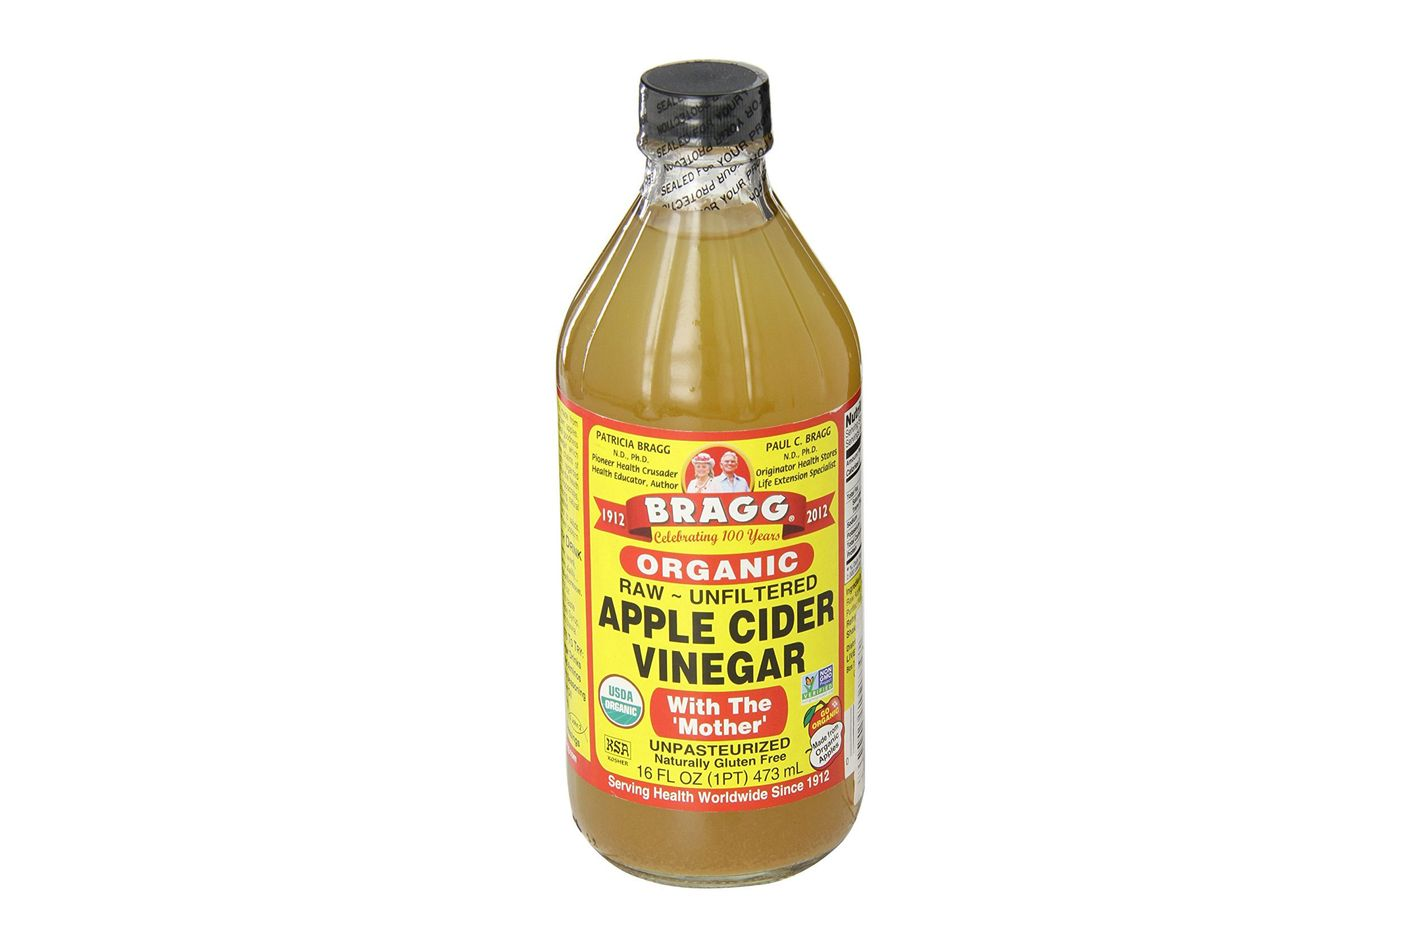 Bragg USDA Gluten Free Organic Raw Apple Cider Vinegar